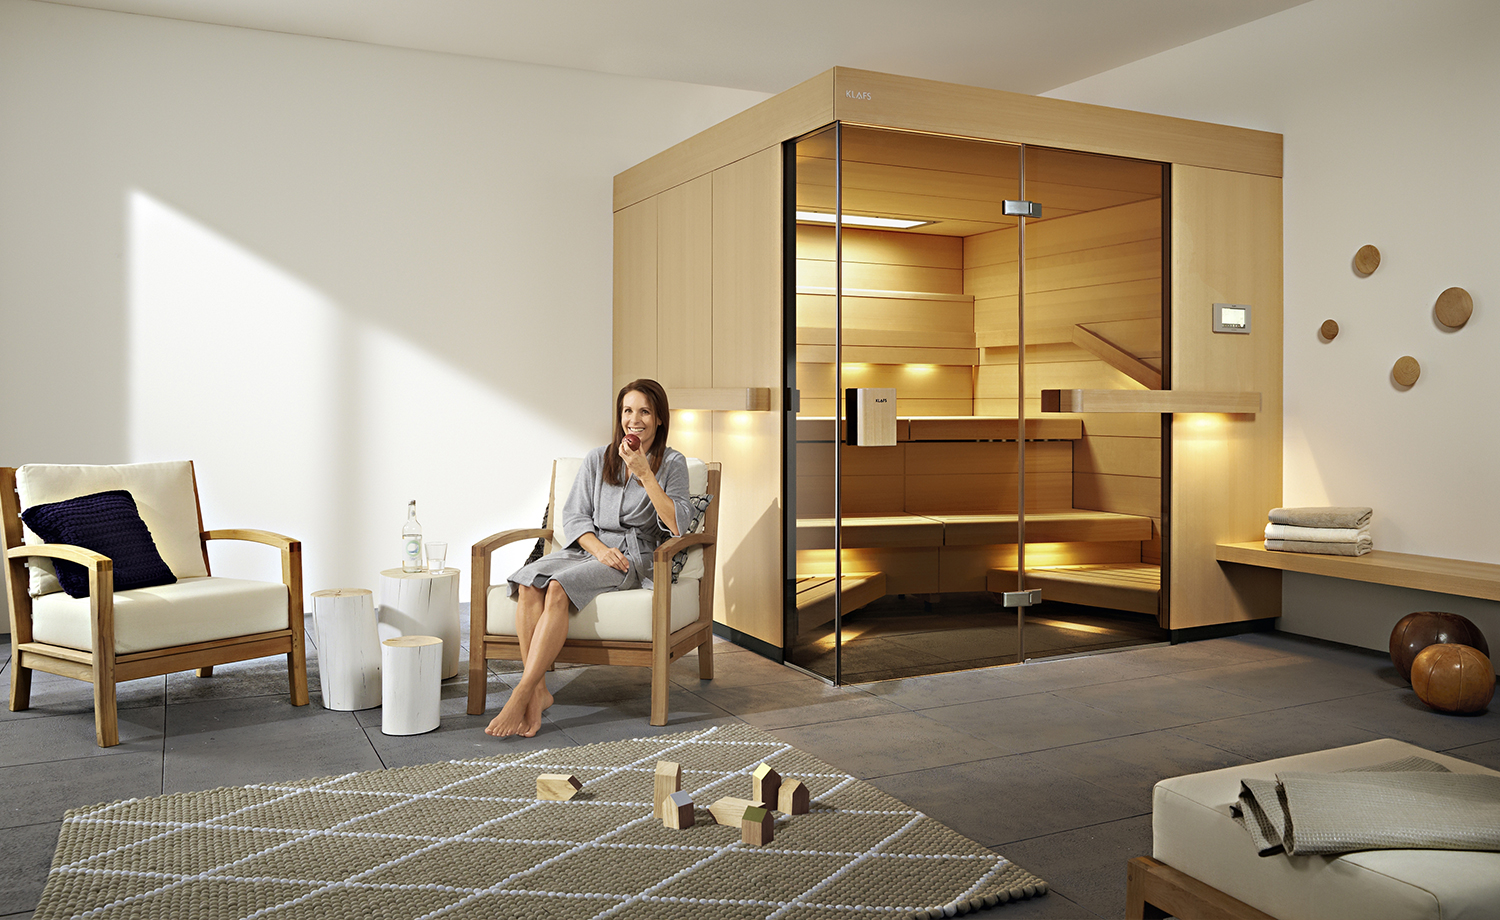 luxus pur wellnessbad mit sauna. Black Bedroom Furniture Sets. Home Design Ideas